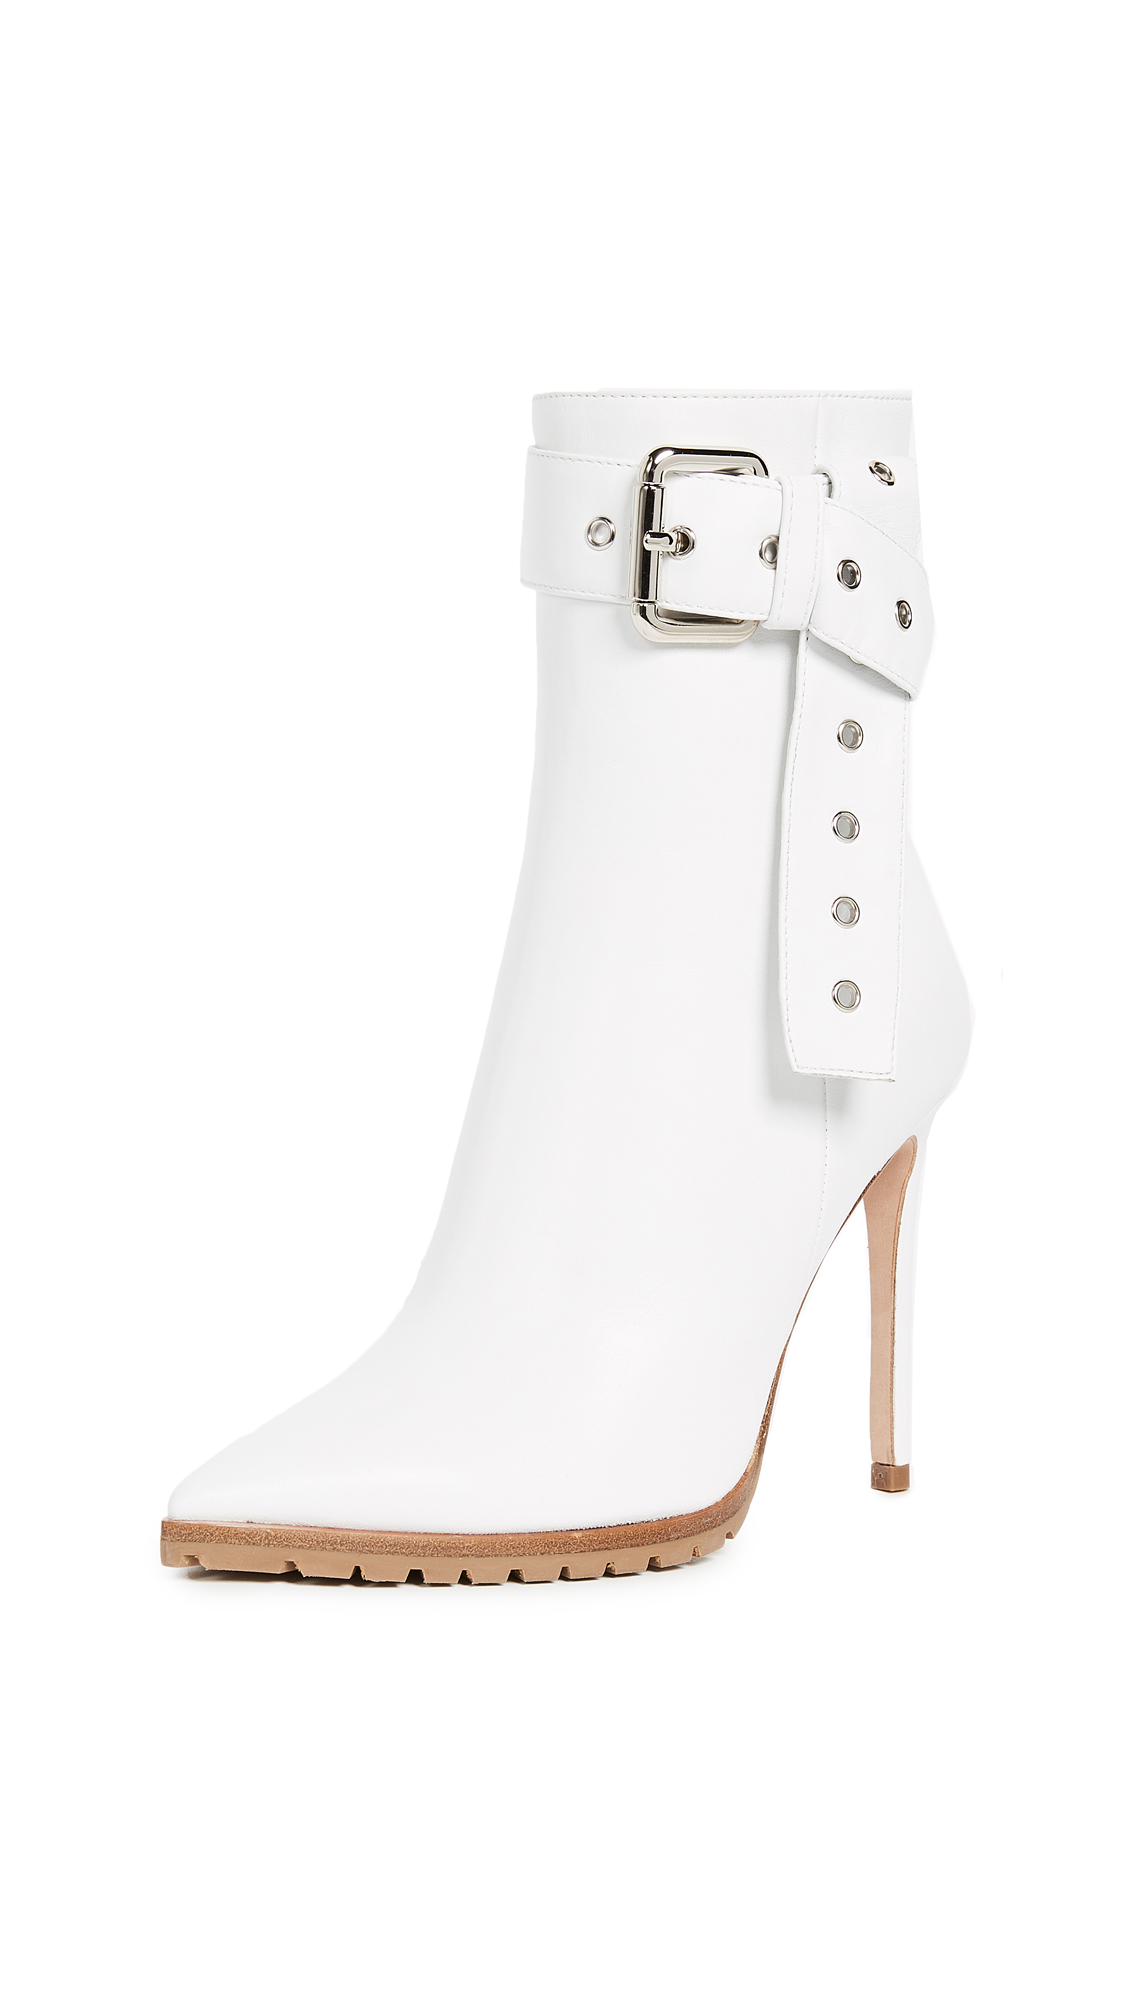 Monse Leather Booties - White